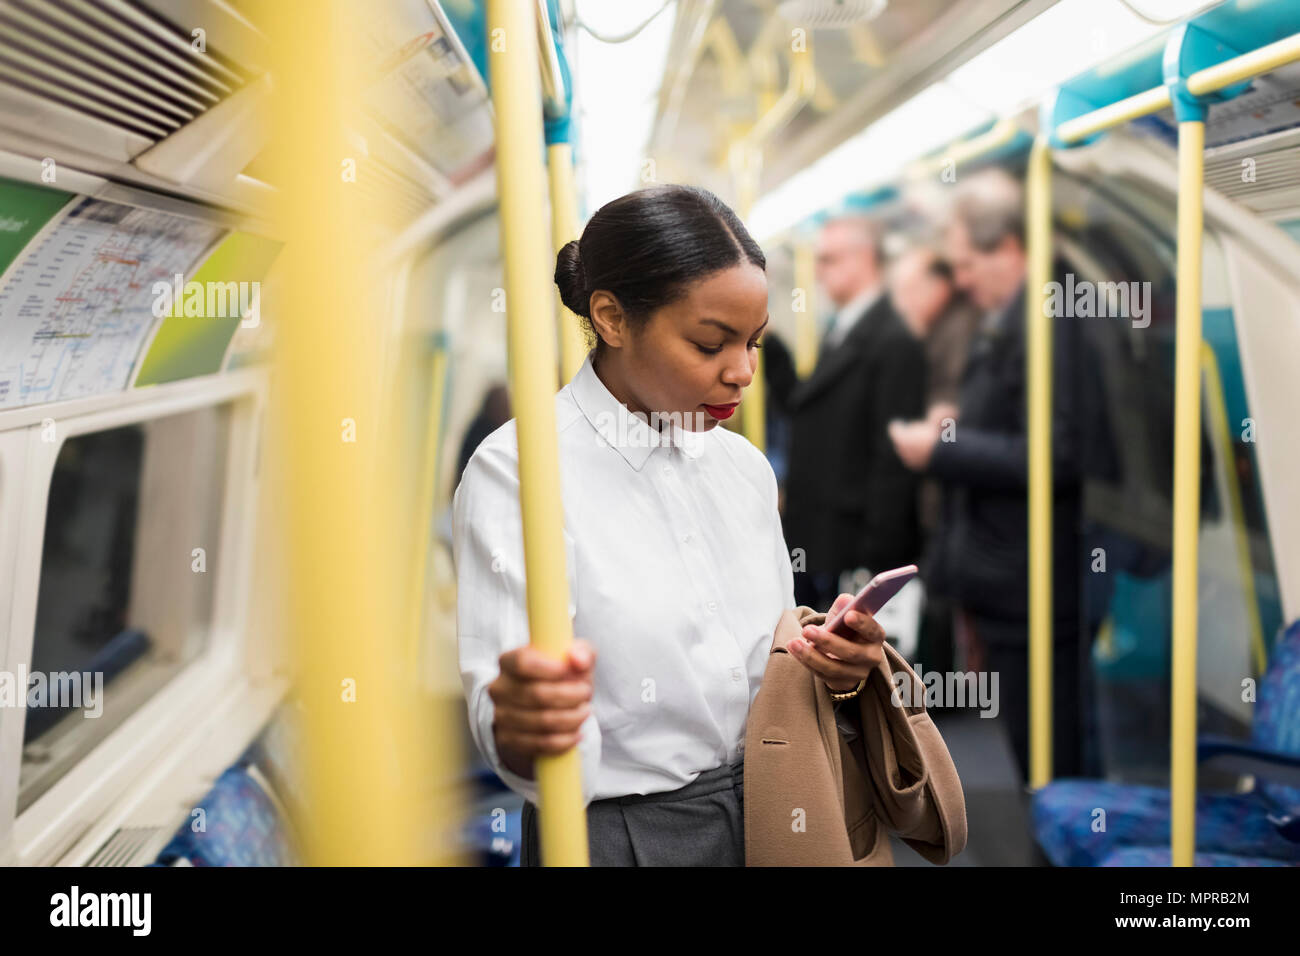 UK, London, businesswoman in underground train looking at cell phone - Stock Image